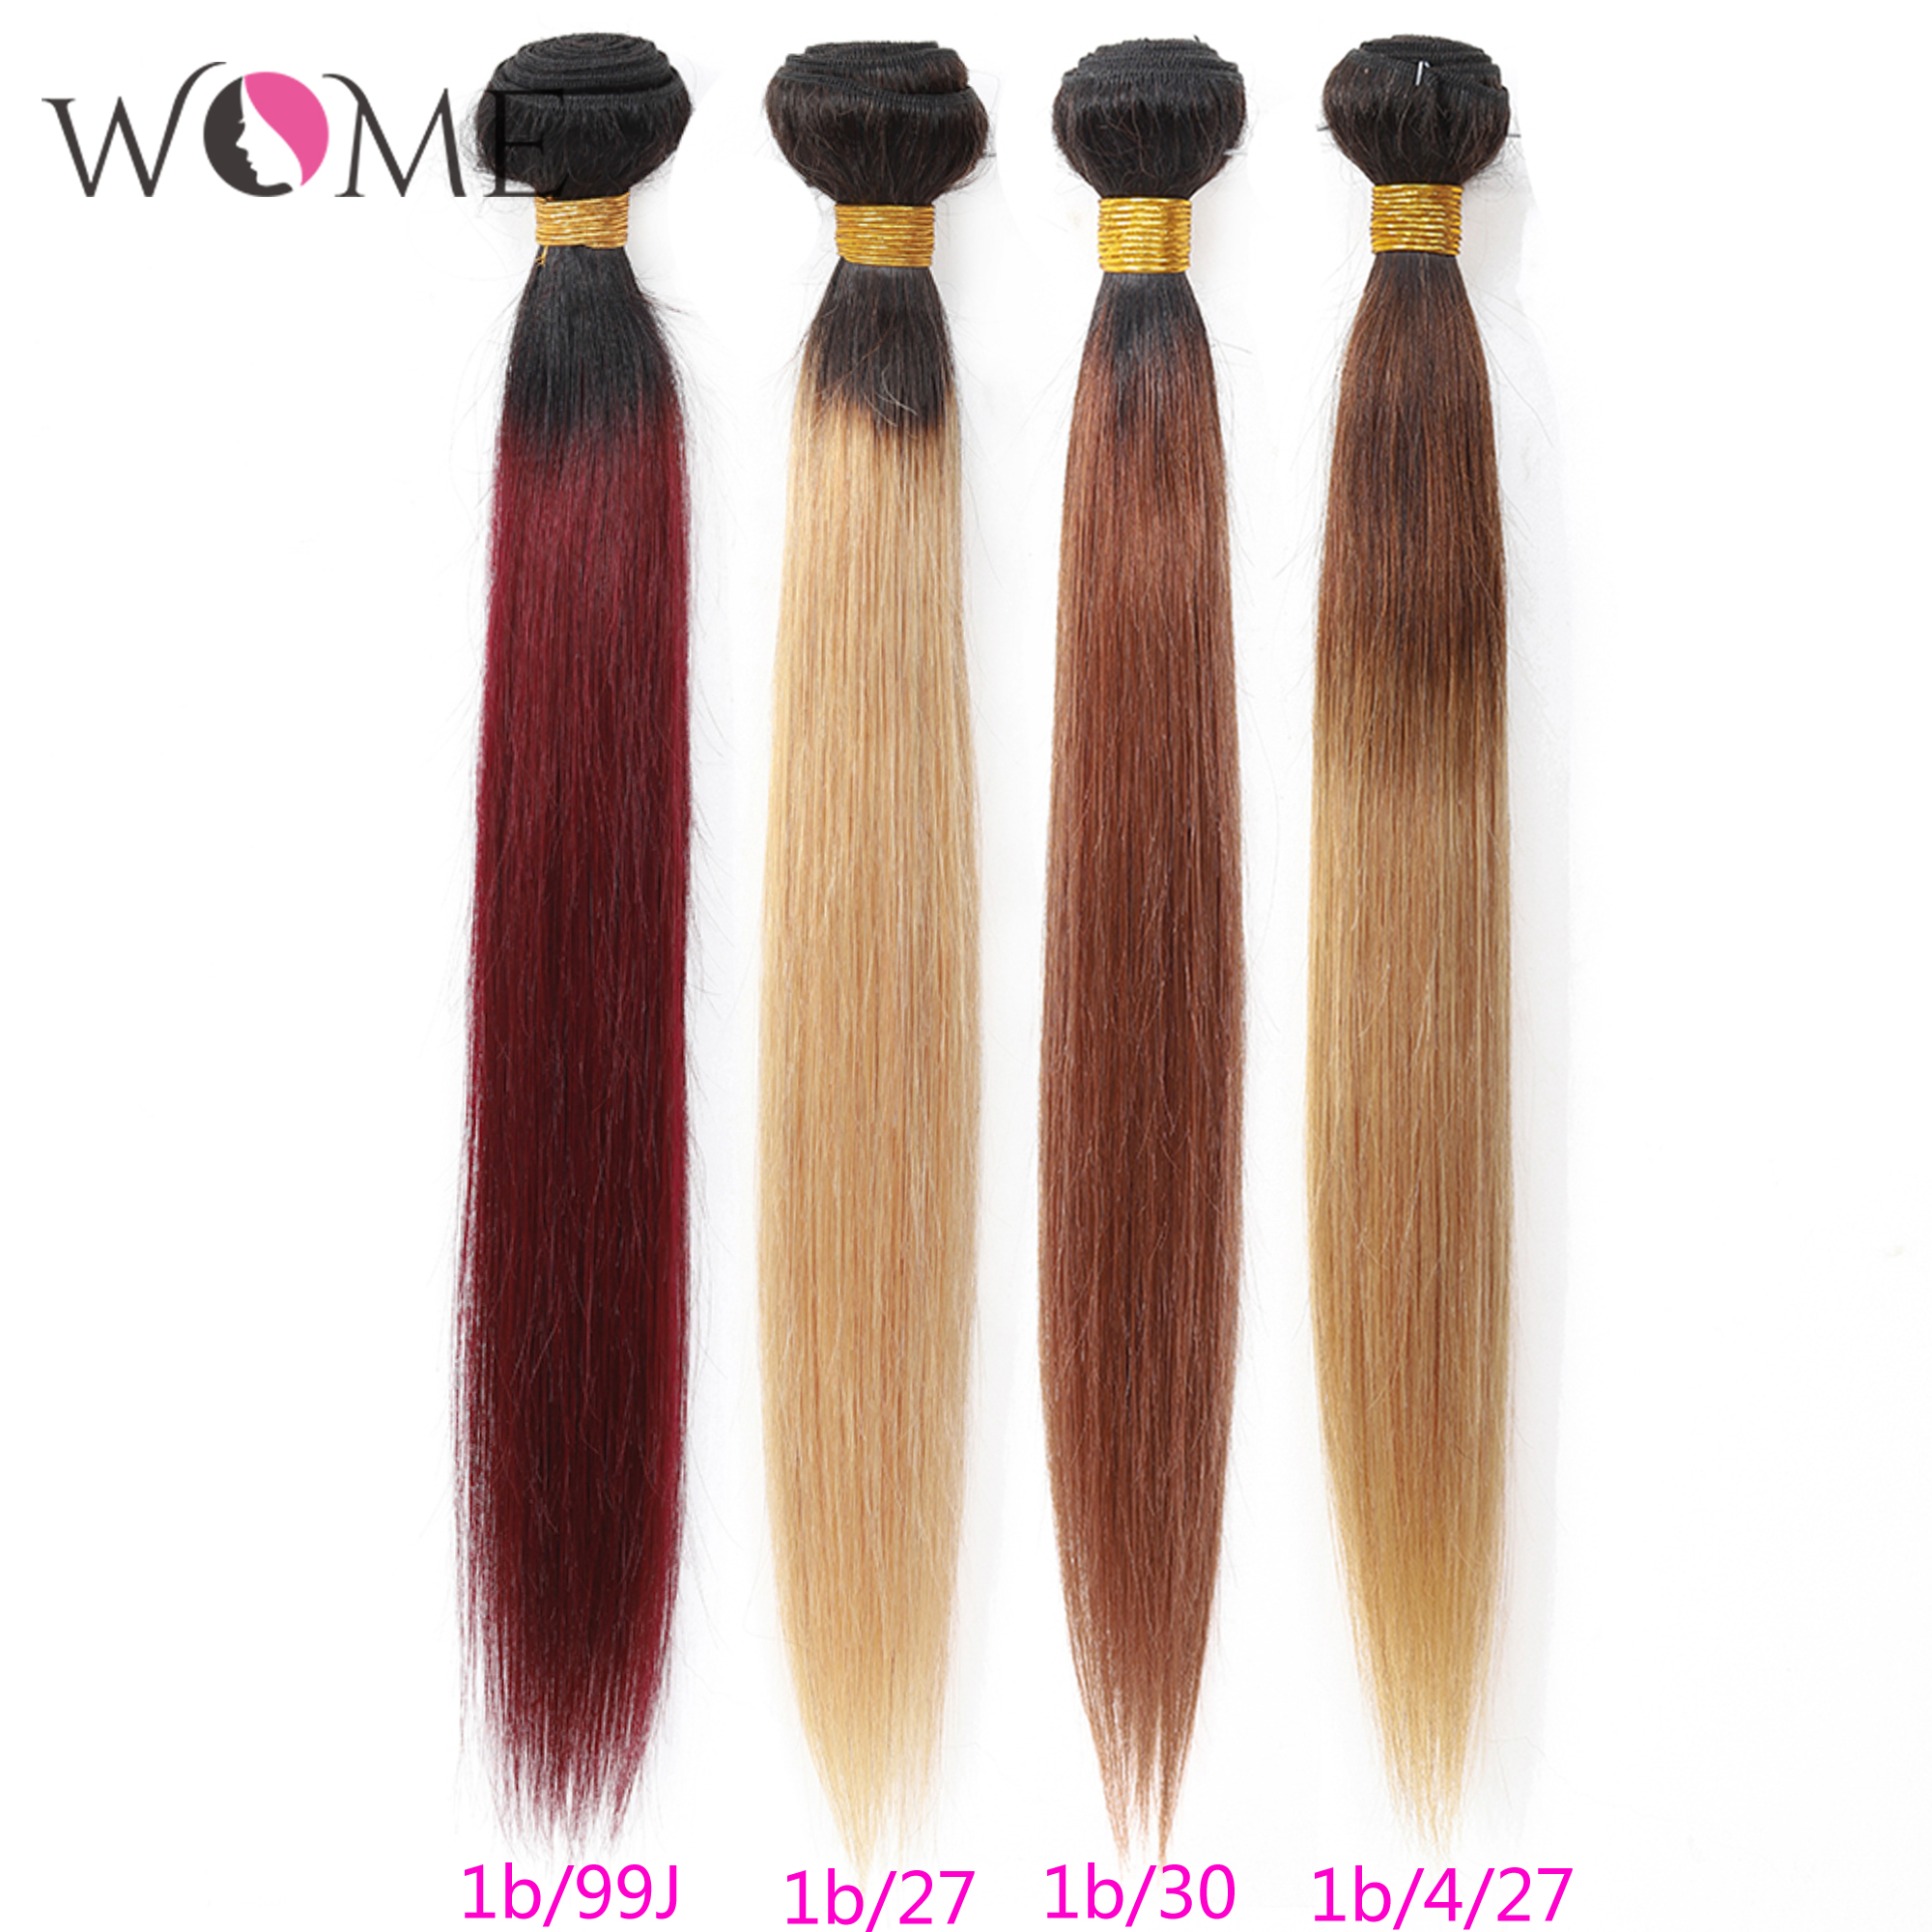 WOME Ombre Straight Hair Bundles Pre-colored 1b/27 1b/30 1b/99j Brazilian Human Hair Bundles 1/3/4pcs Two Tone Non-remy Hair